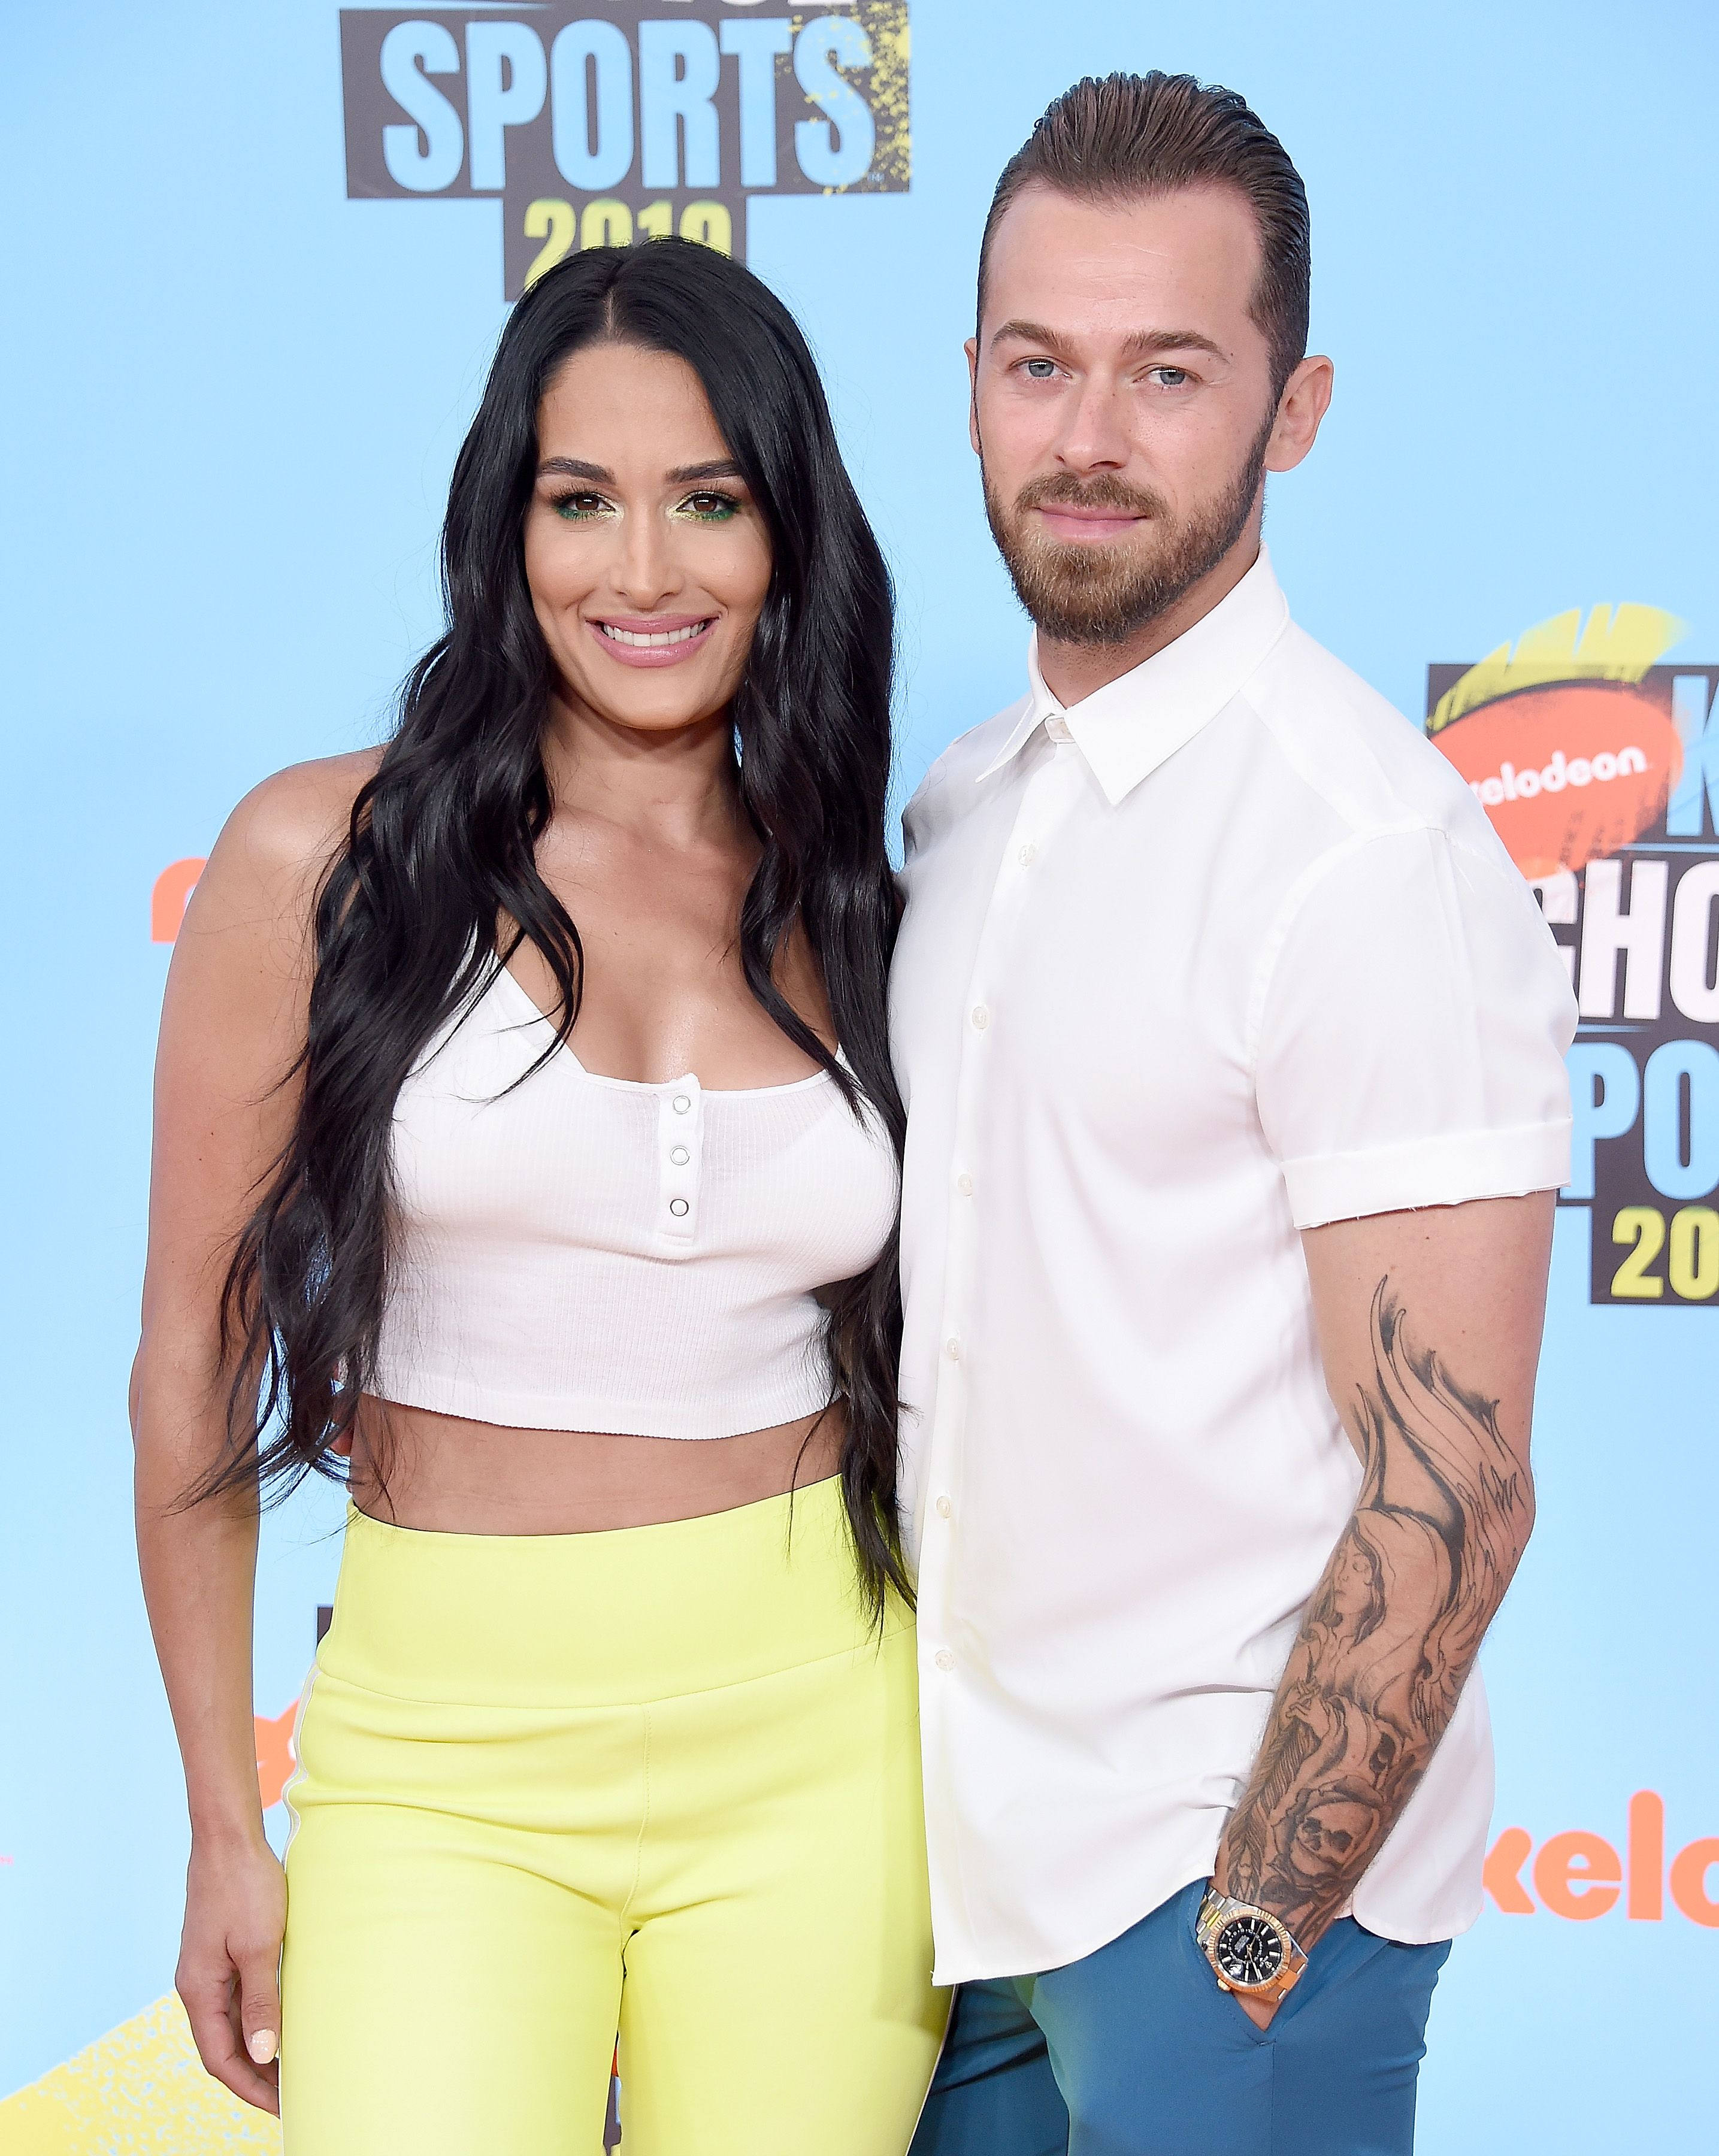 Nikki Bella and Artem Chigvintsev at the Nickelodeon Kids' Choice Sports event in 2019, in Santa Monica, California   Source: Getty Images